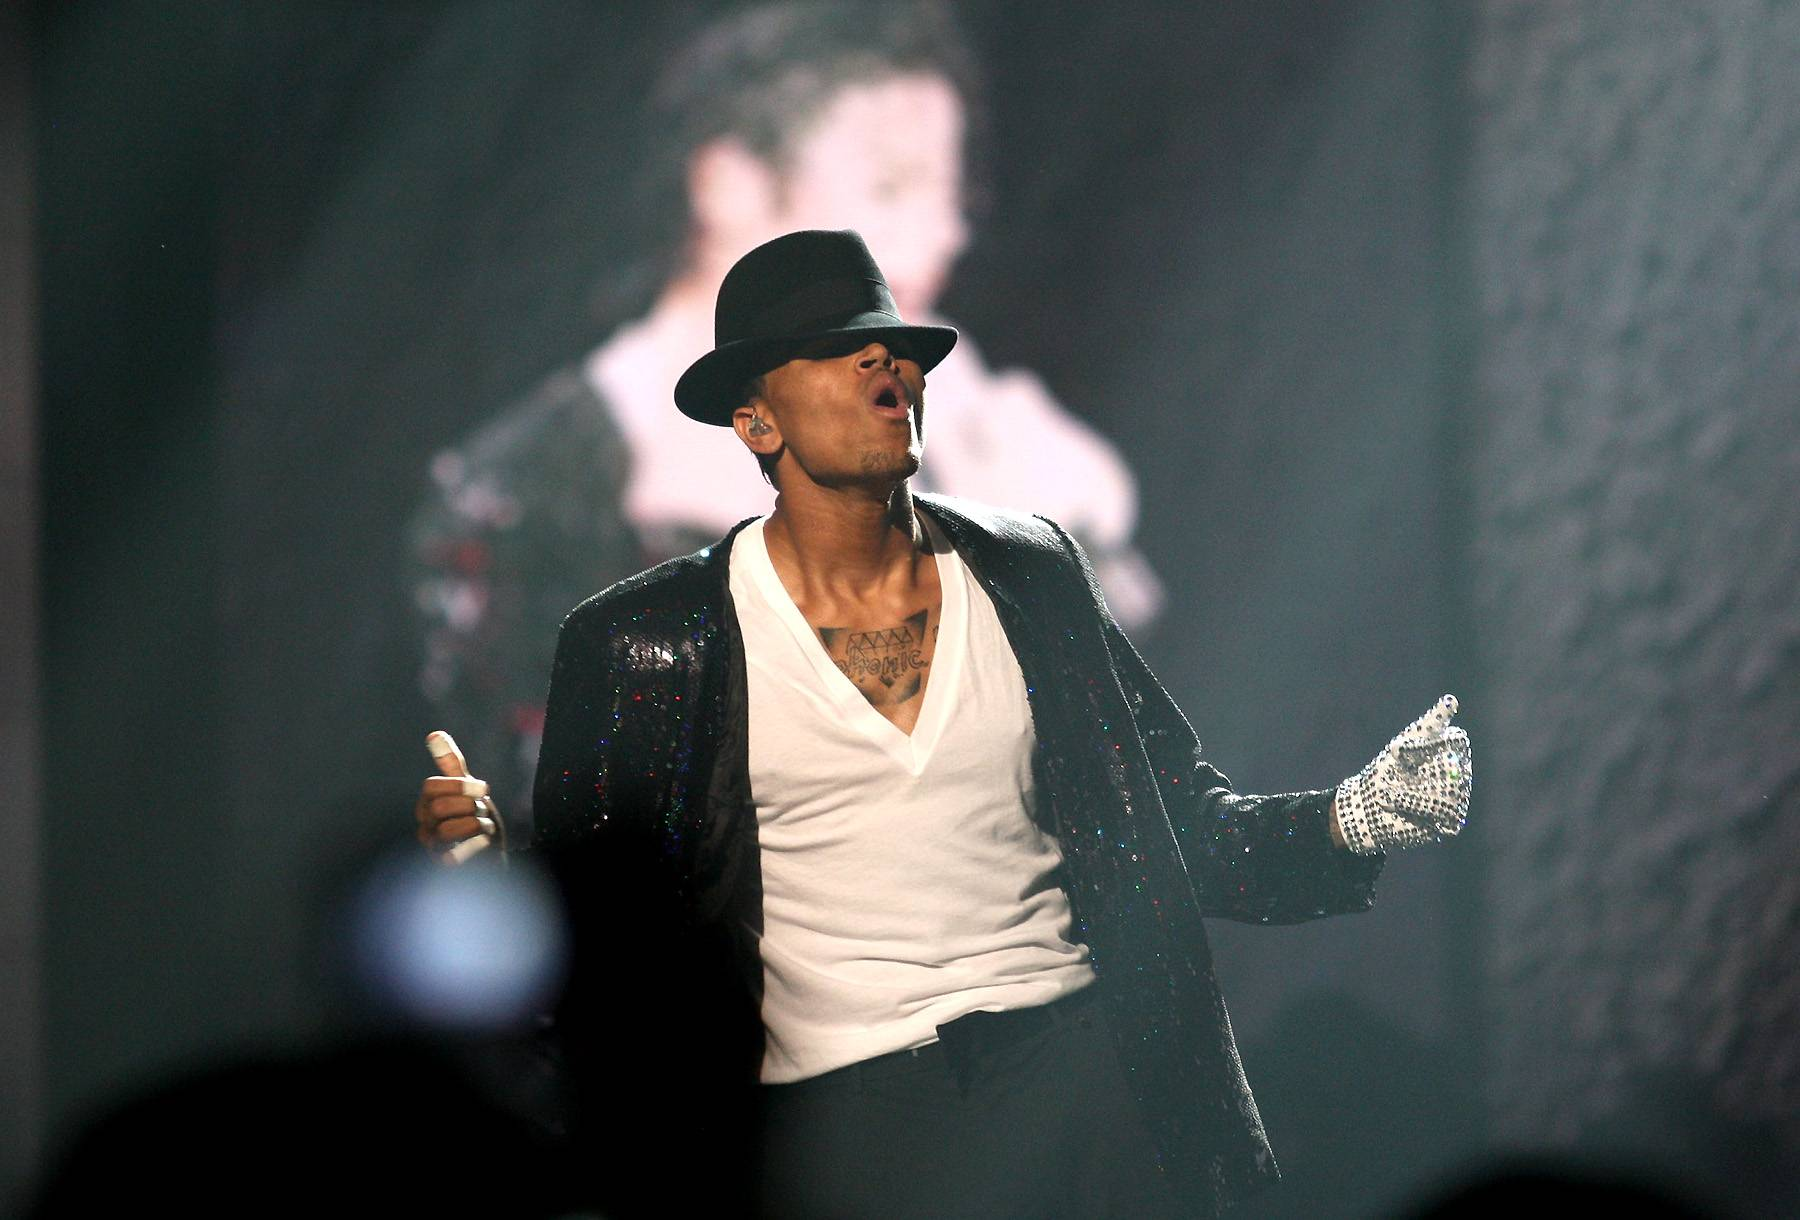 """Chris Brown - It ain't hard to tell that MJ's moves have inspired Chris Brown. Breezy has been vocal about his adoration for the late great singer since day one. But the """"Loyal"""" singer got to officially show his respect for the King of Pop a year after MJ's death when he performed an emotional tribute at the BET Awards. Donning a replica MJ hat and his iconic glove, Breezy performed a medley of hits –– singing and dancing his way through songs like """"The Way You Make Me Feel"""" and """"Man in the Mirror.""""Breezy continued to show his dedication when he premiered his """"Fine China"""" video in 2013.(Photo: Frederick M. Brown/Getty Images)"""